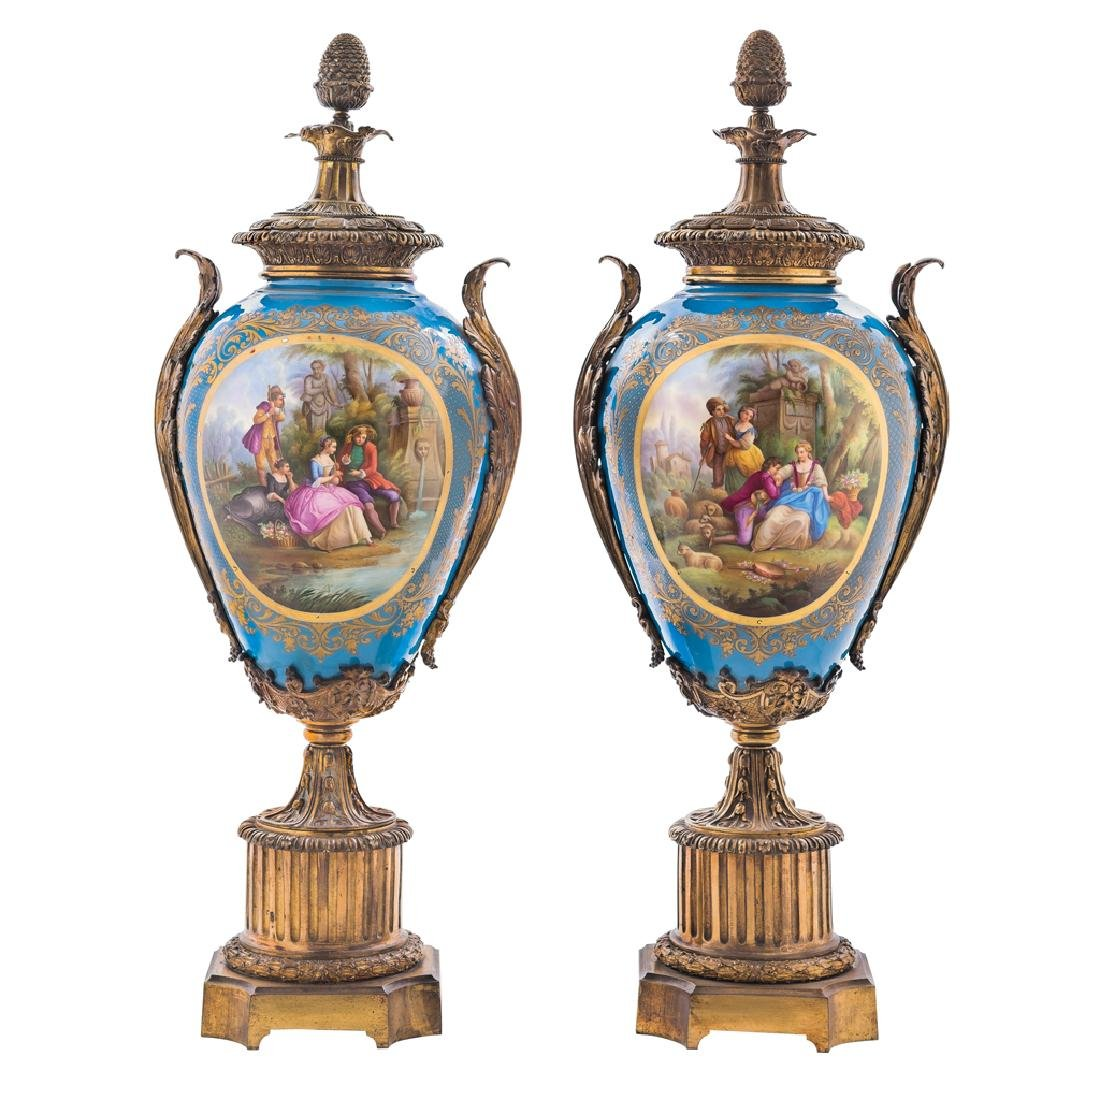 A PAIR OF VASES. FRANCE, 19th CENTURY. Sèvres style